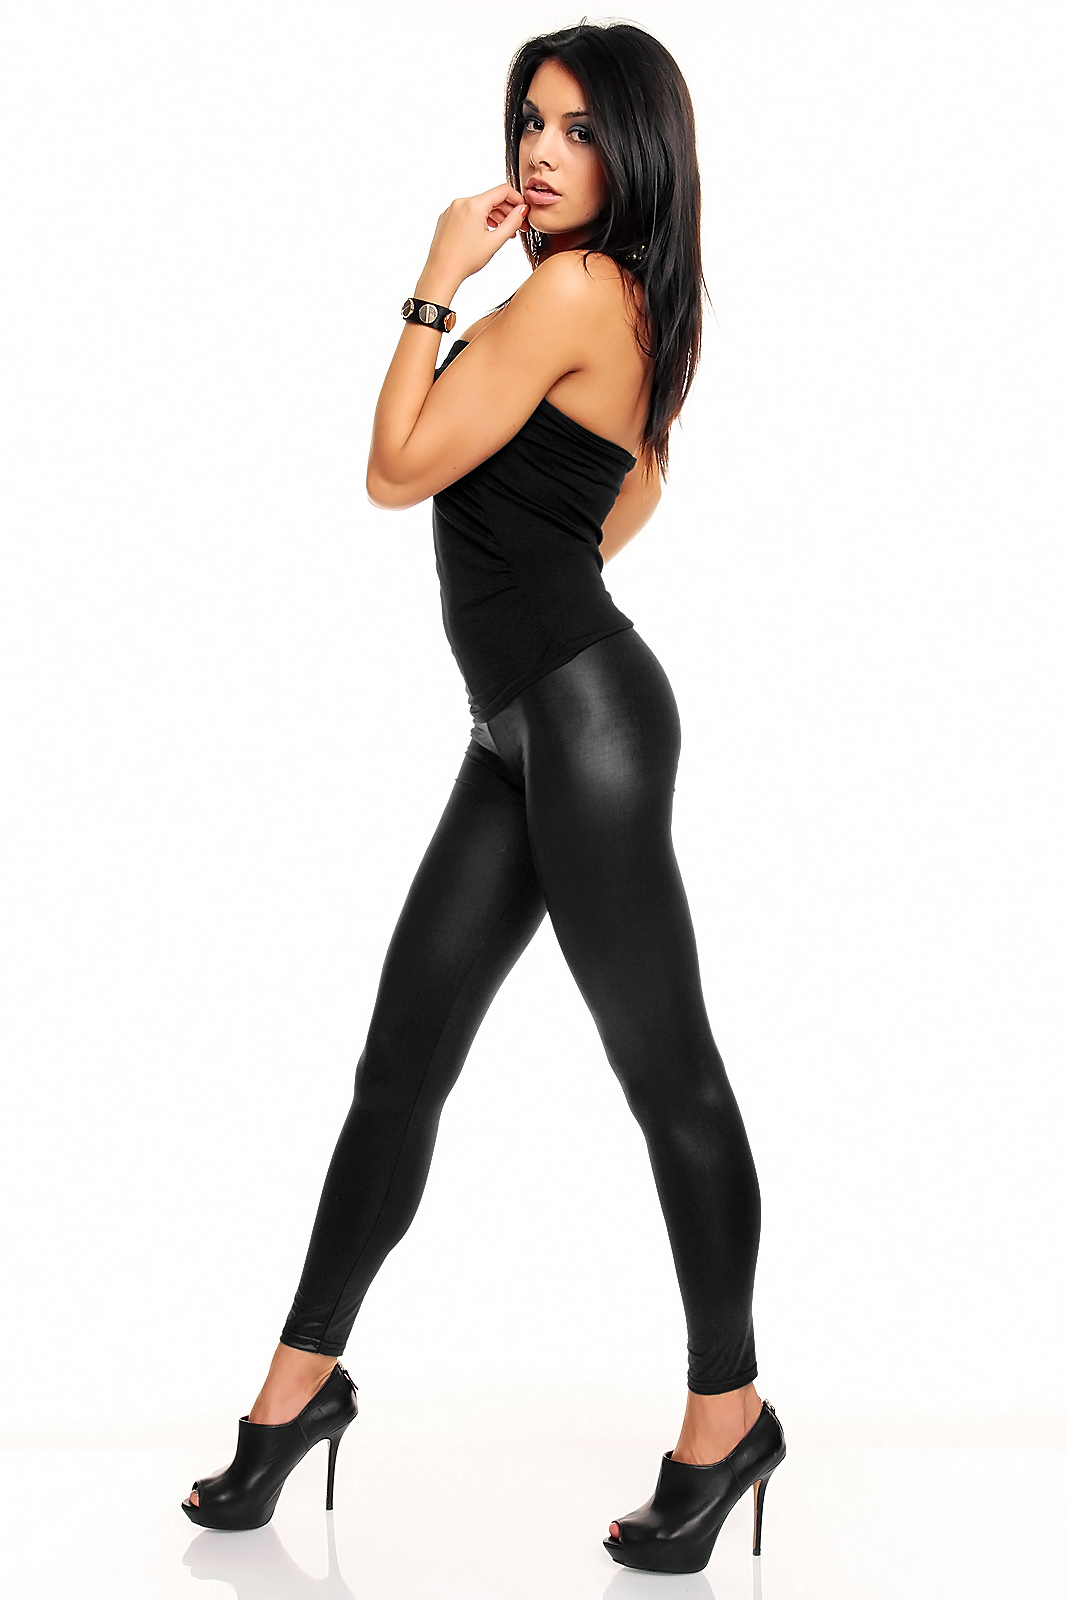 Wet look leggings india